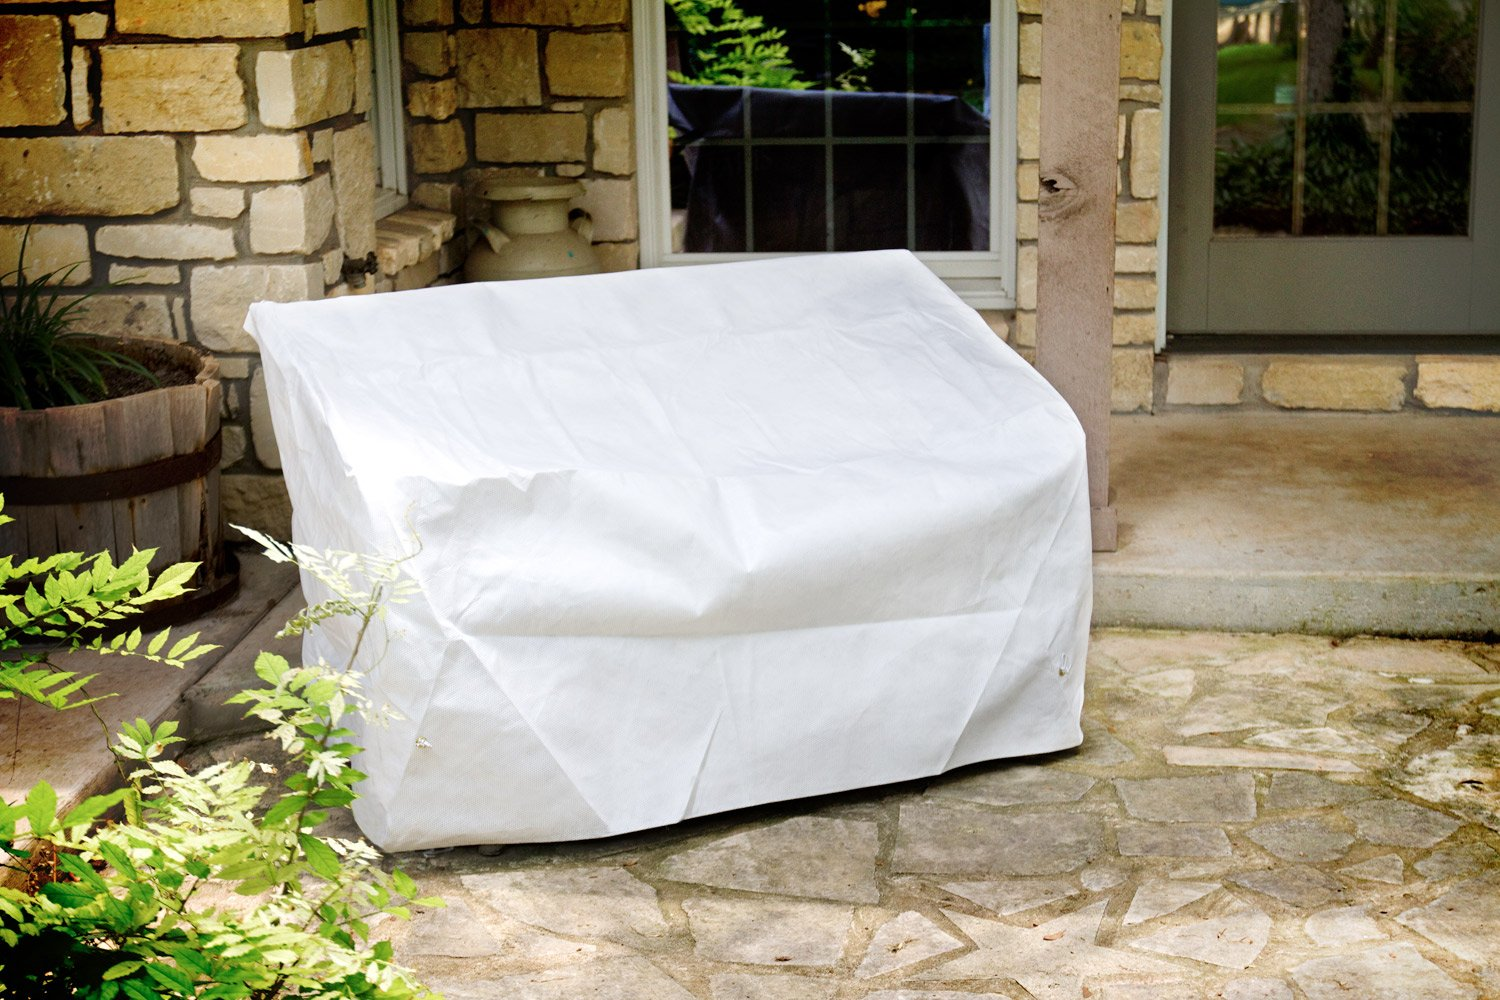 KoverRoos DuPont Tyvek 24204 5-Feet Bench/Glider Cover, 75-Inch Width by 28-Inch Diameter by 37-Inch Height, White by KOVERROOS (Image #4)